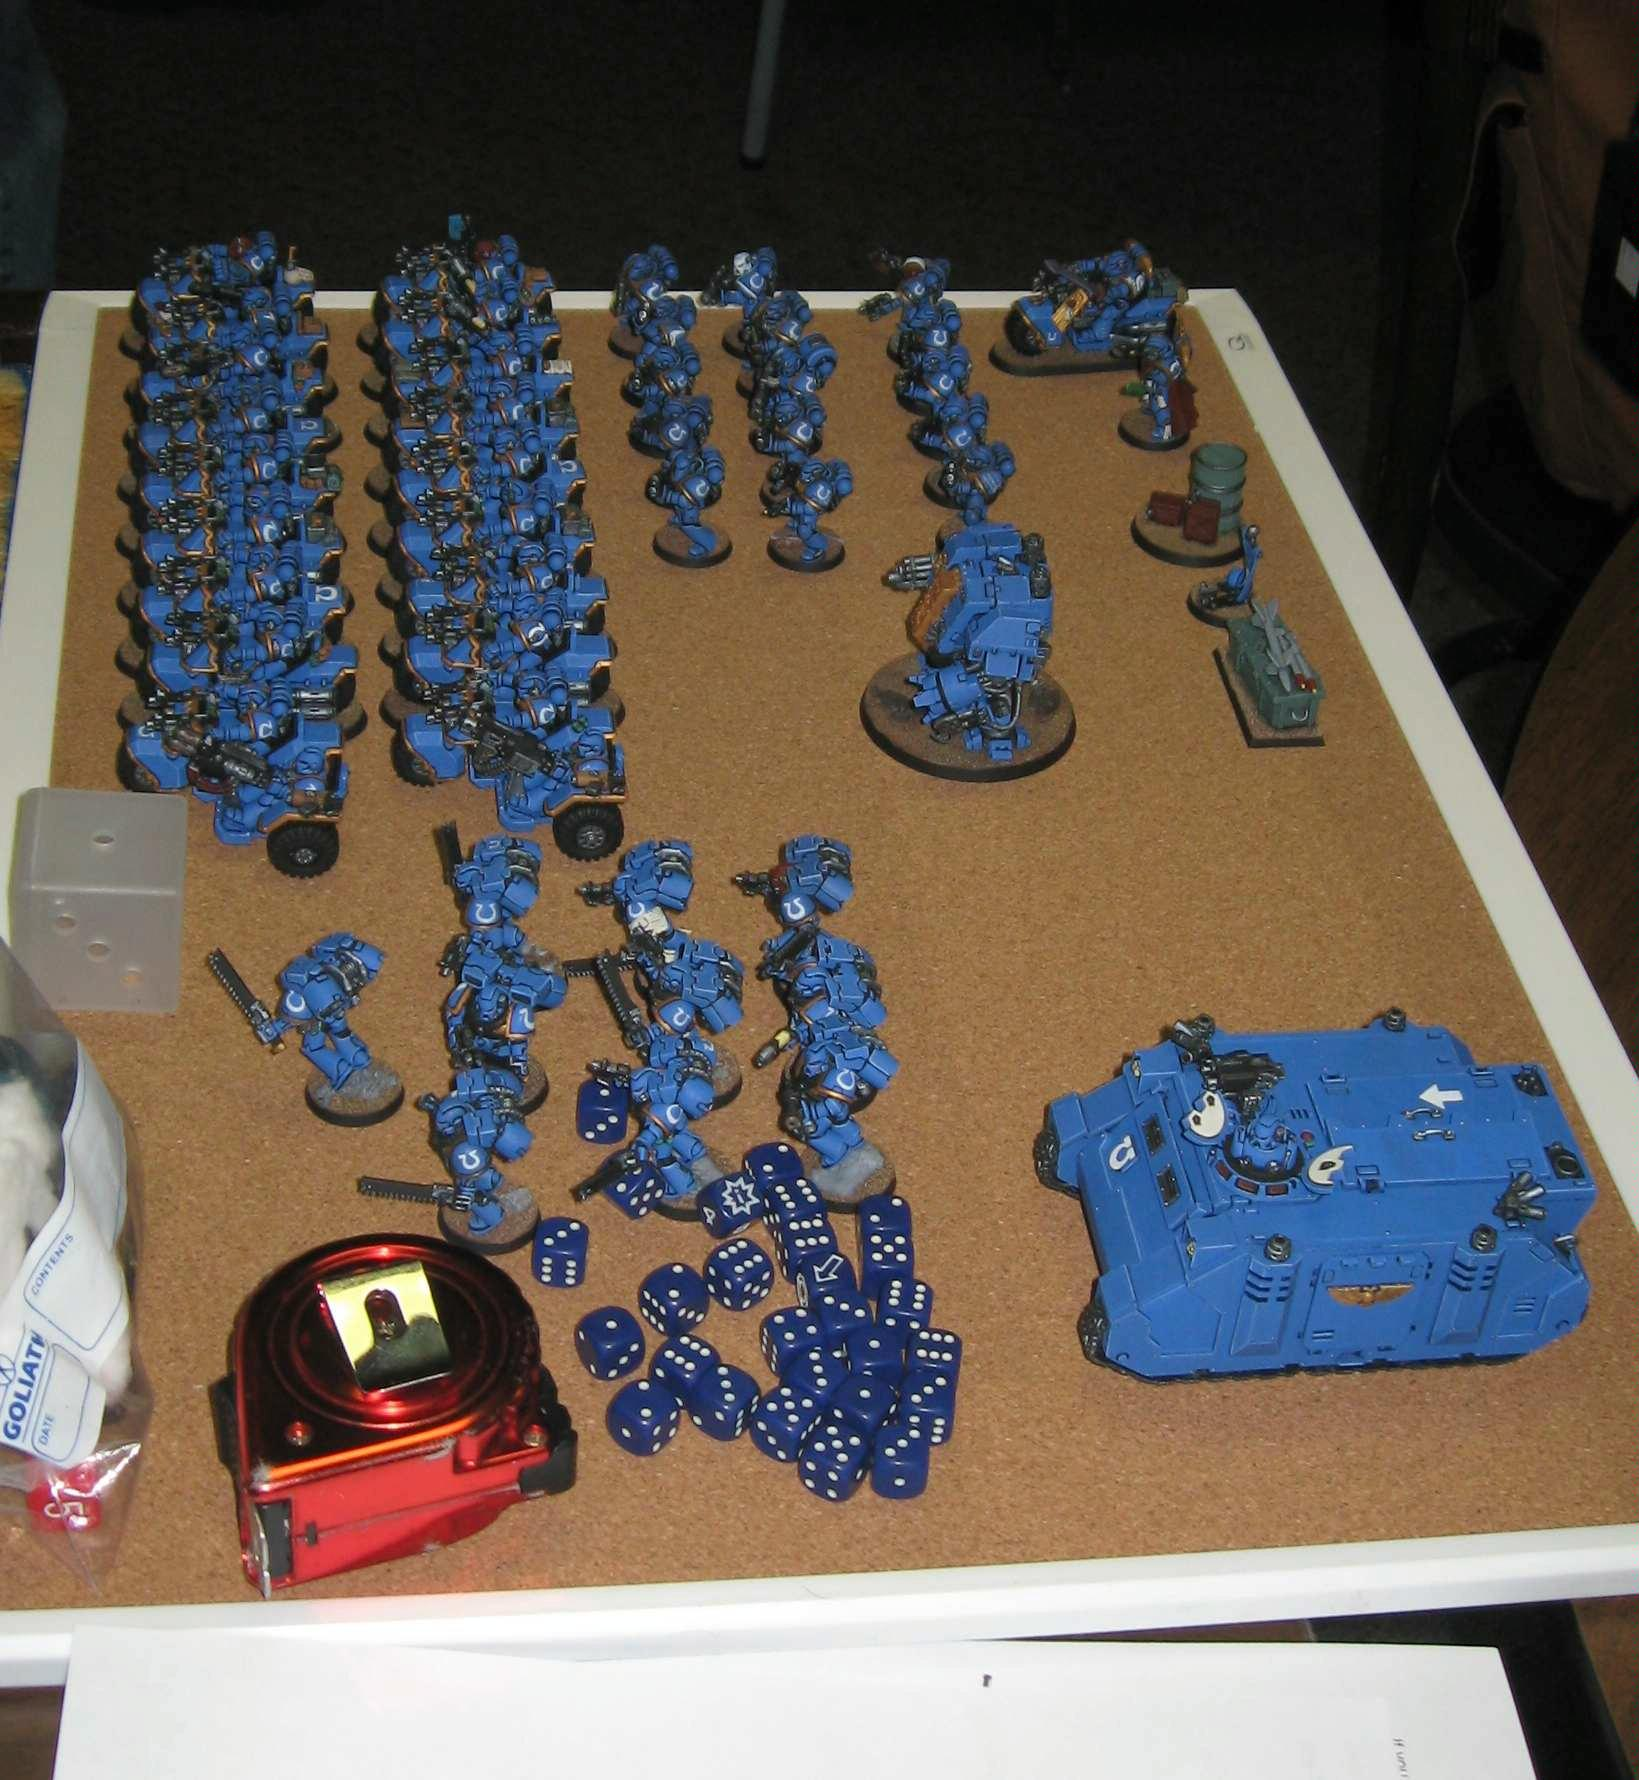 Tournament, Todd's Ultramarines army